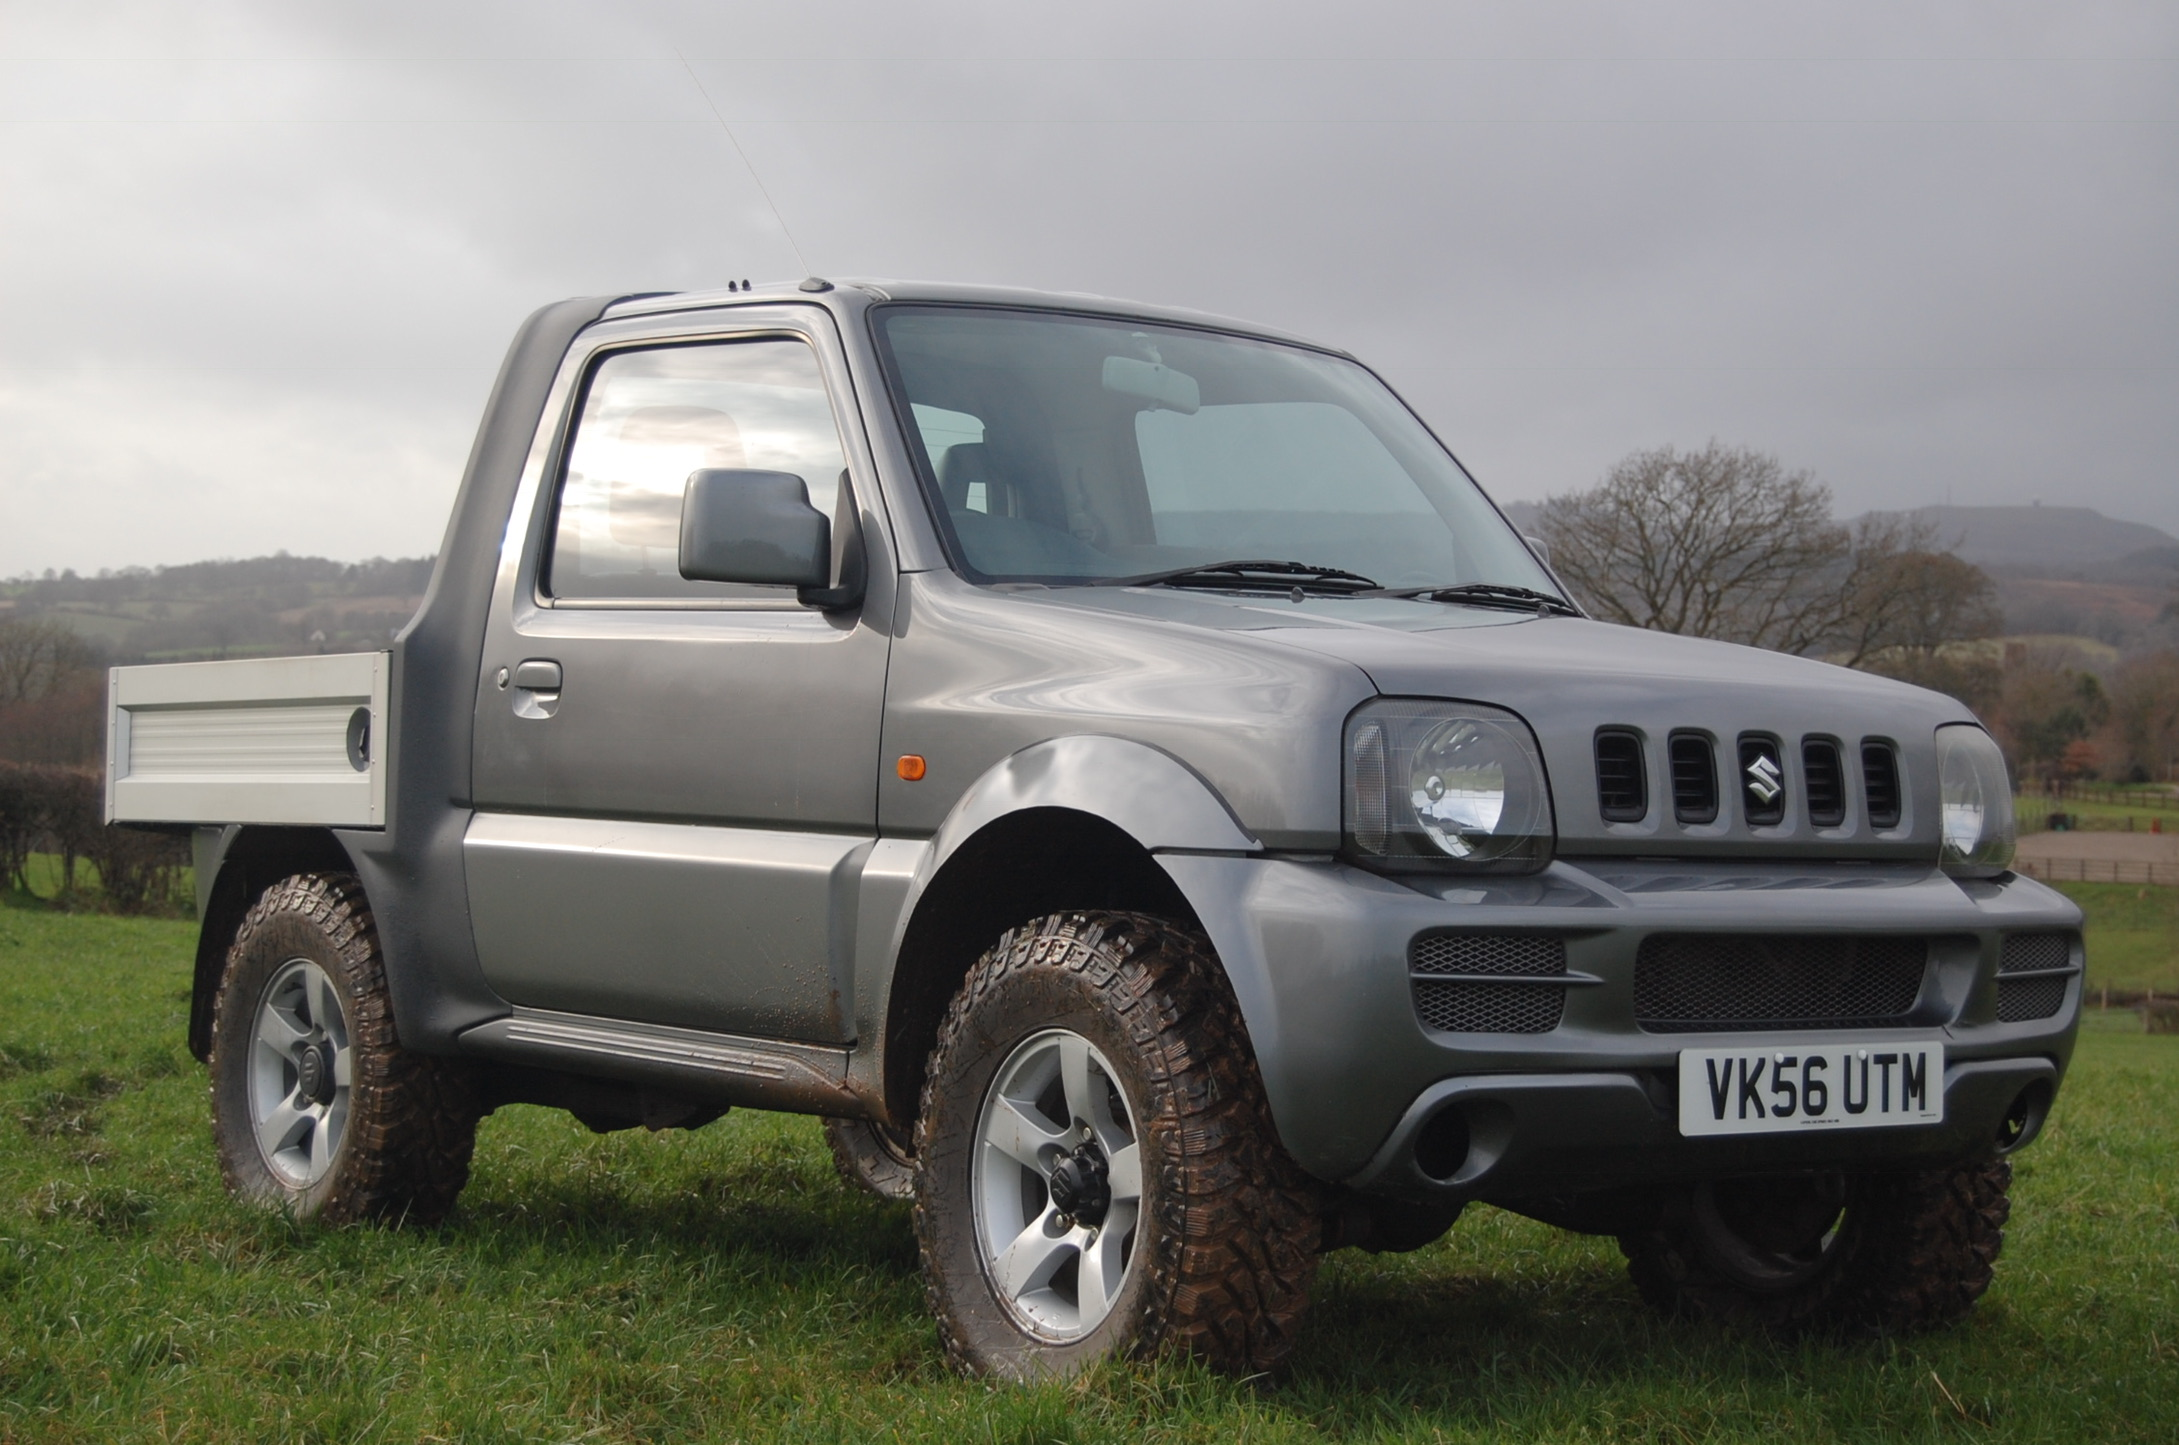 Suzuki Jimny Pickup conversion from Shropshire Quads